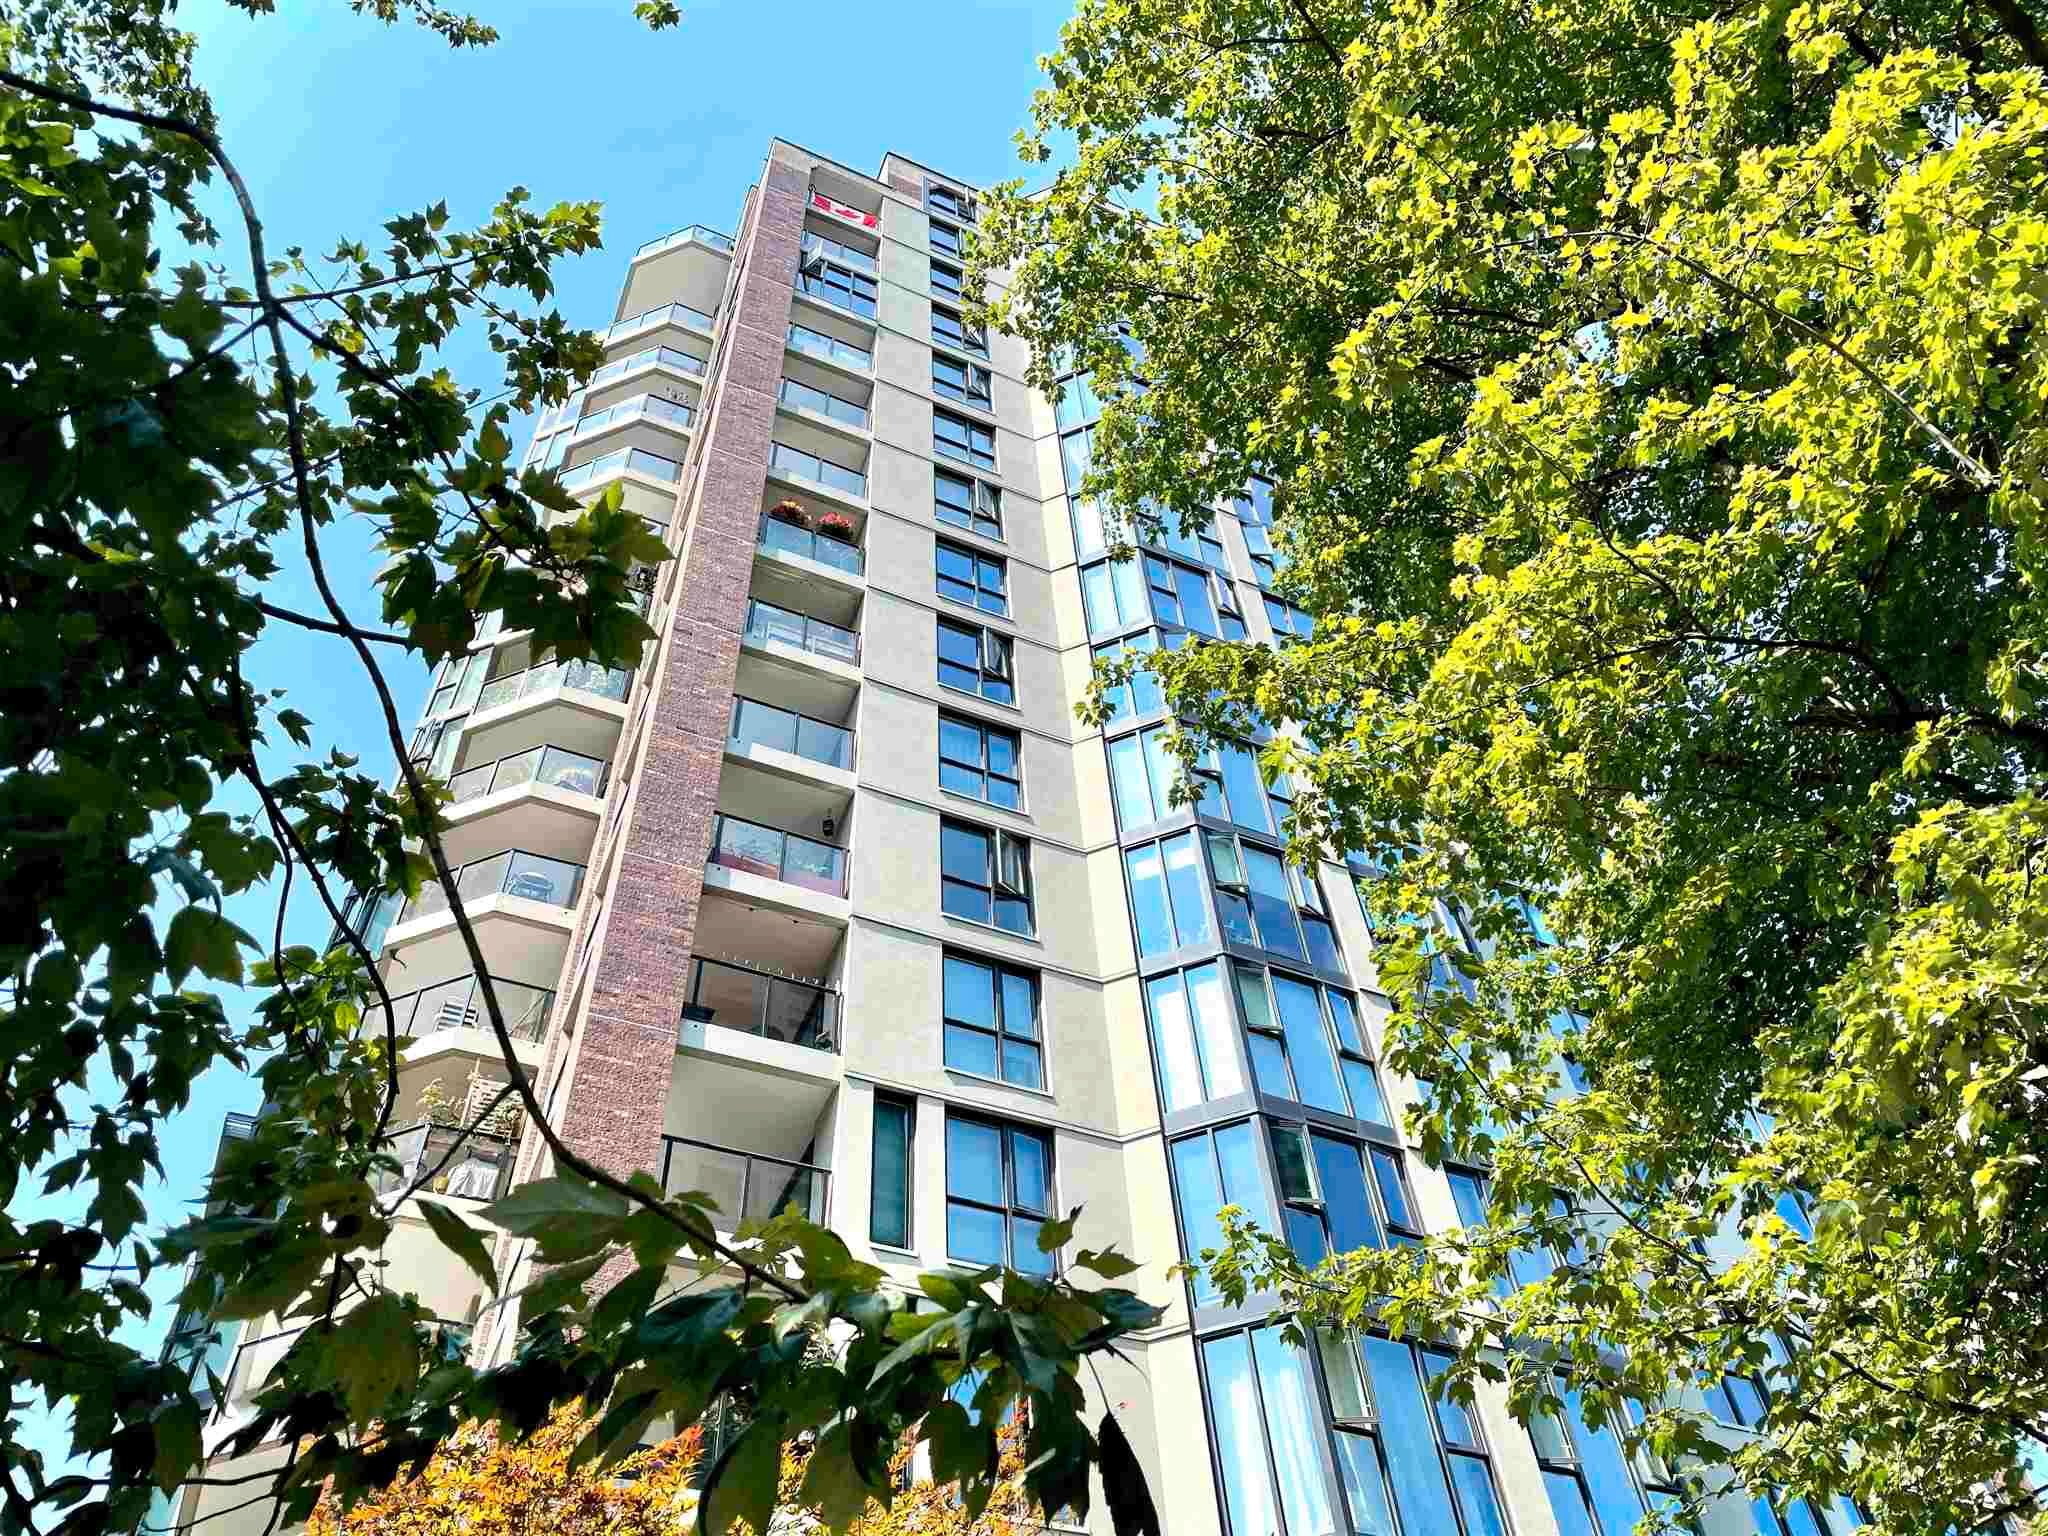 """Main Photo: 1703 1010 BURNABY Street in Vancouver: West End VW Condo for sale in """"The Ellington"""" (Vancouver West)  : MLS®# R2602779"""